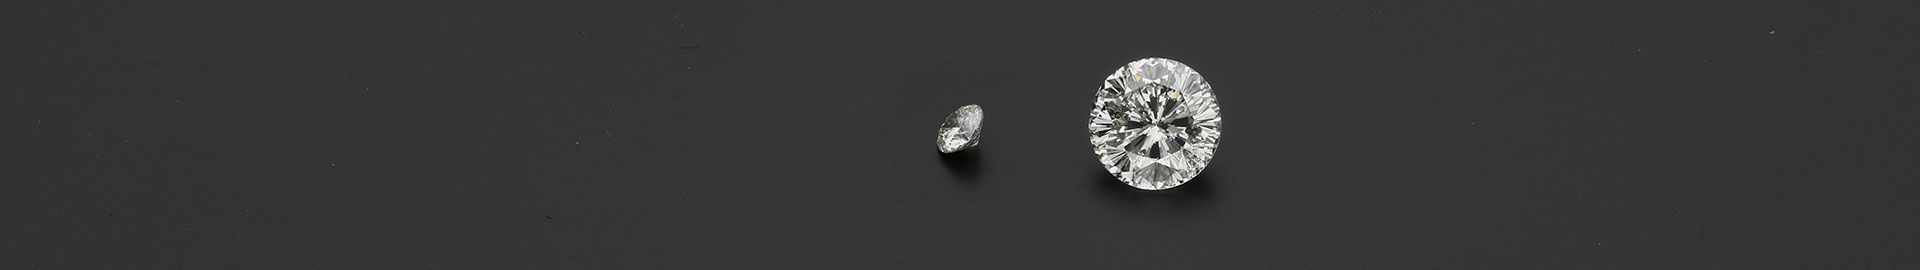 Star of Amsterdam diamond | Unique, beautiful & special Zazare Diamonds